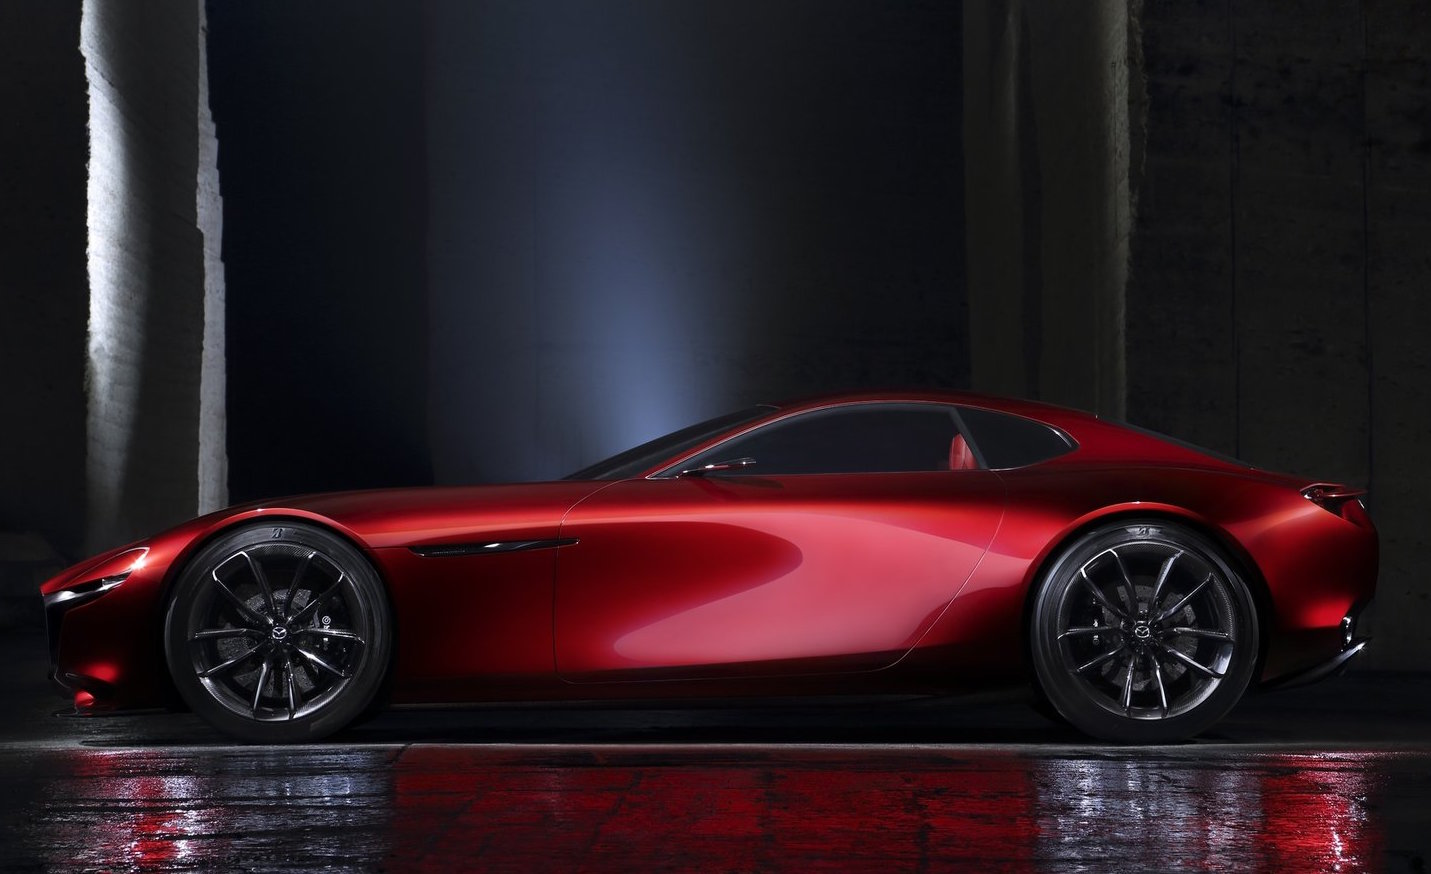 Mazda Has Previously Shown Its Potential Intensions For The Future Of A  Rotary Sports Car With The Mazda RX Vision Concept, Unveiled In 2015  (pictured).